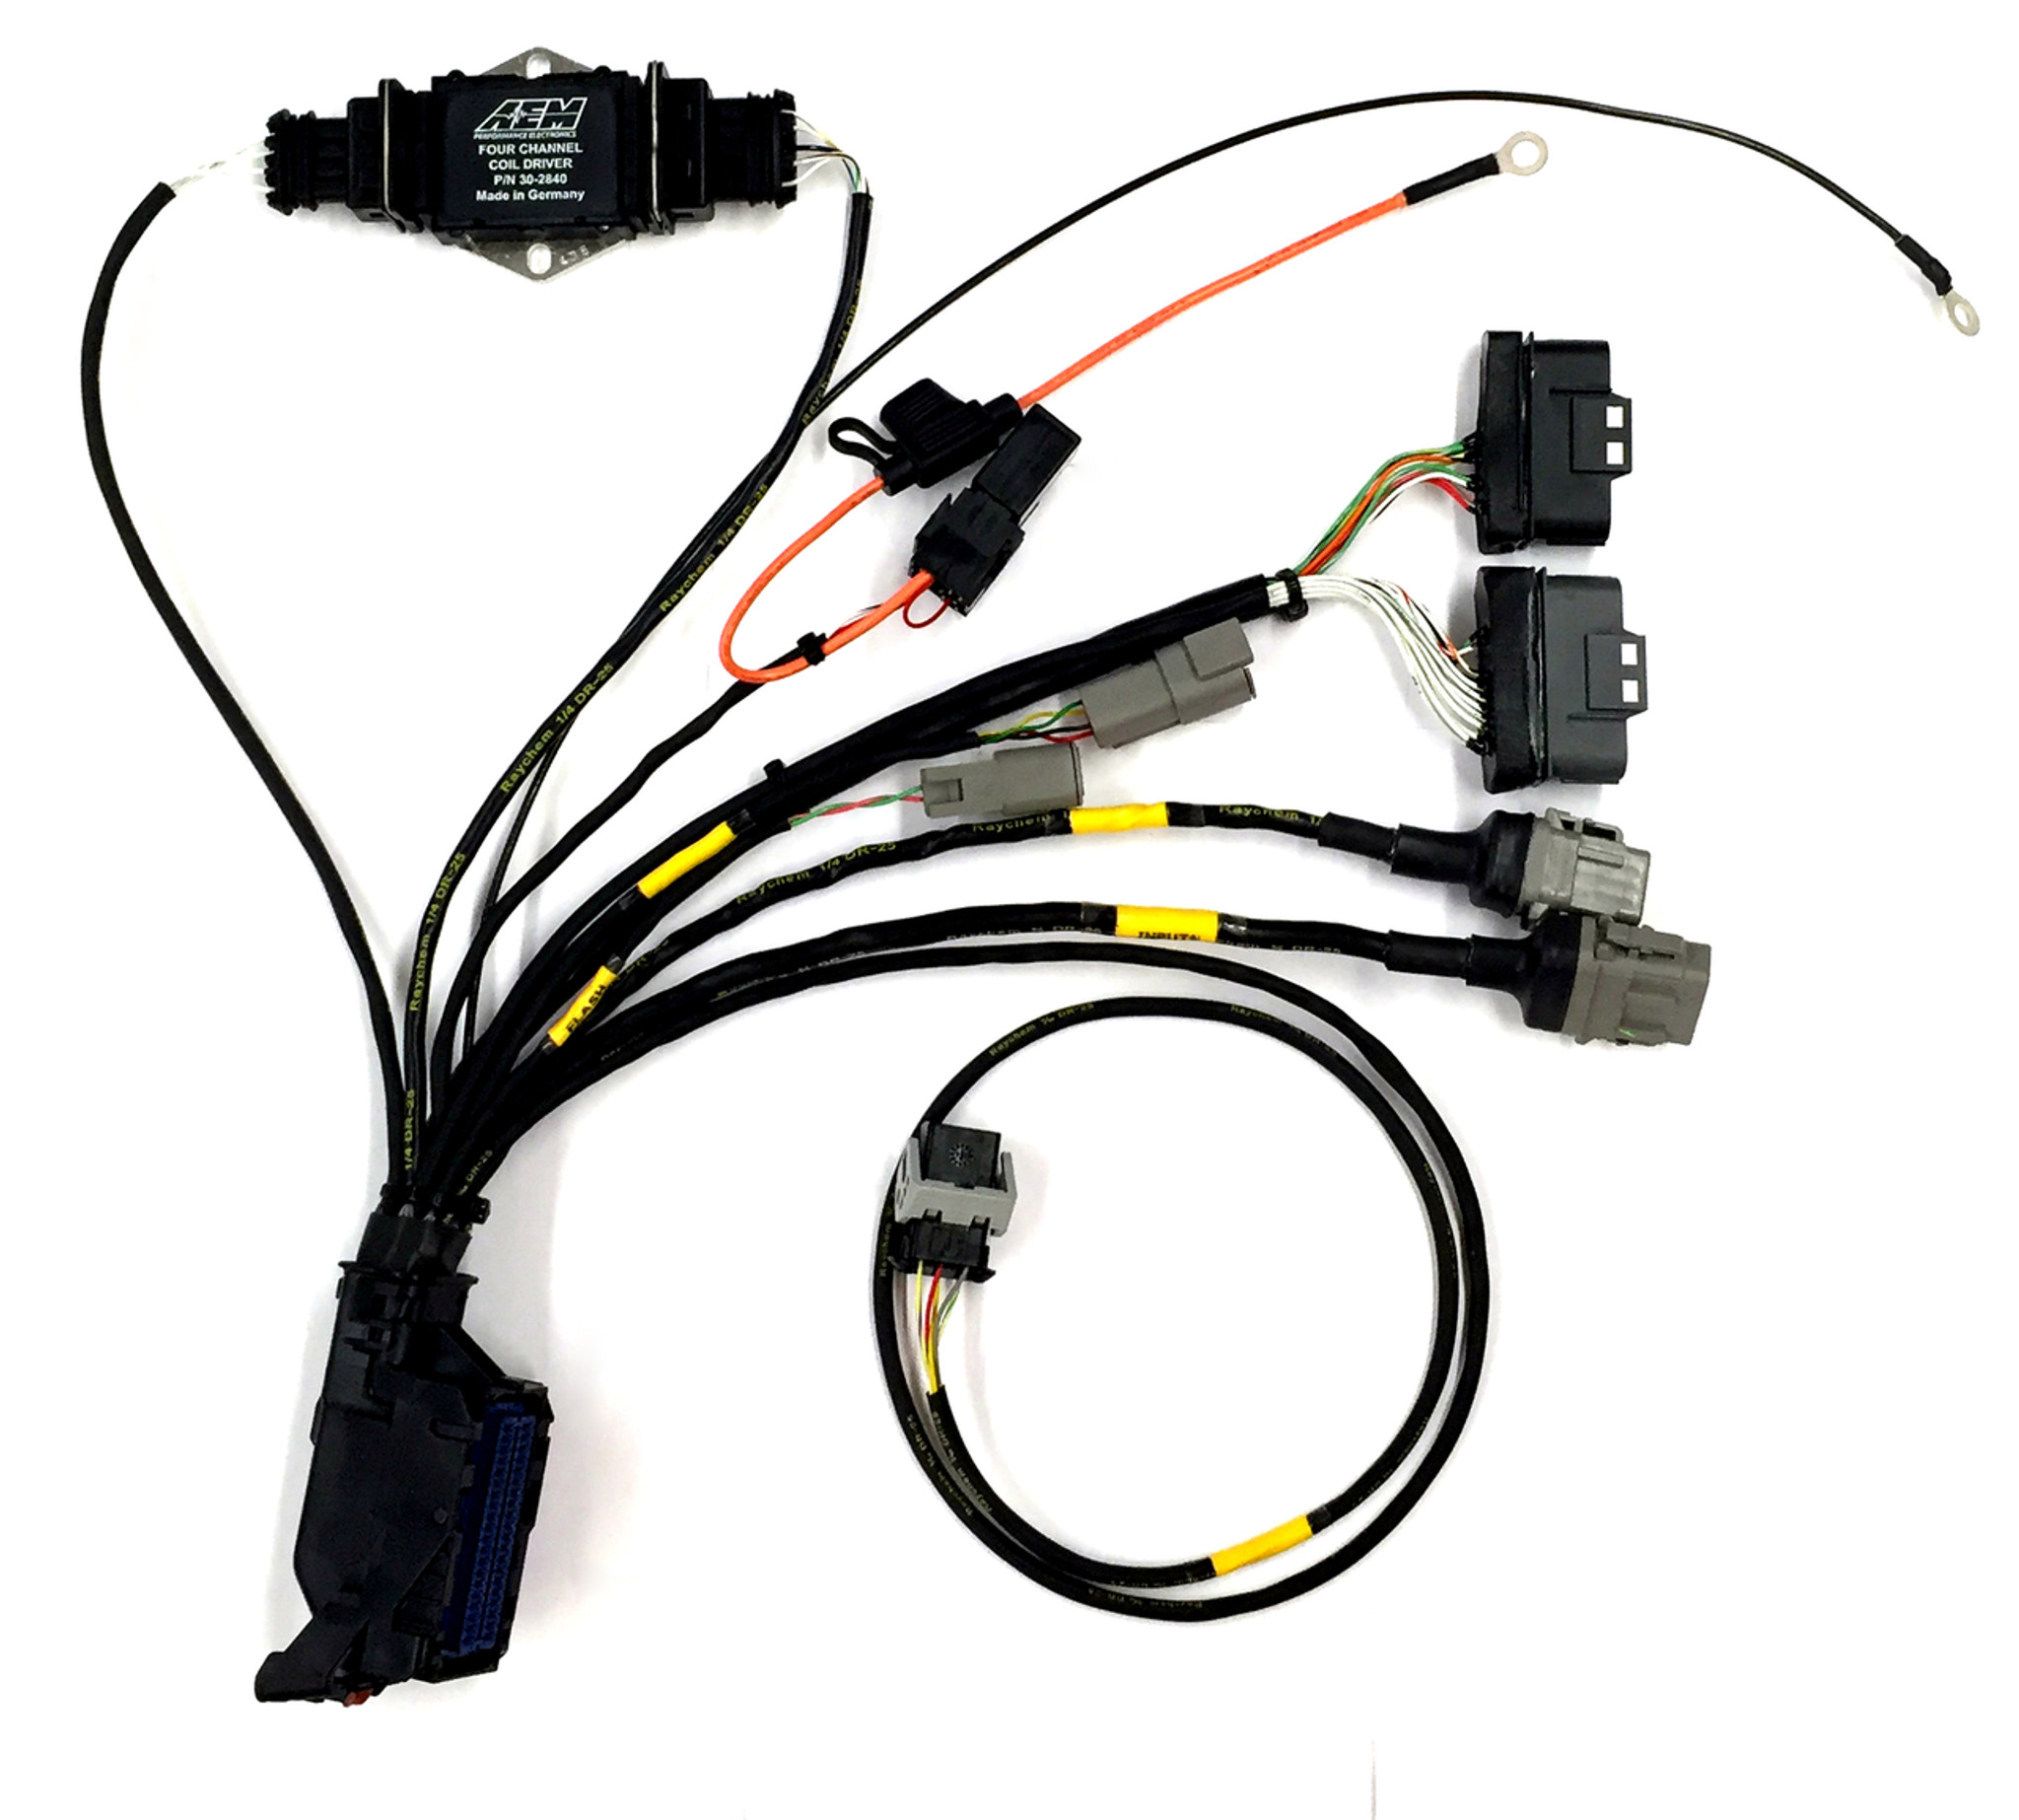 medium resolution of infinity ecu plug and play wiring harness shop htp p28 ecu wiring harness ecu wiring harness